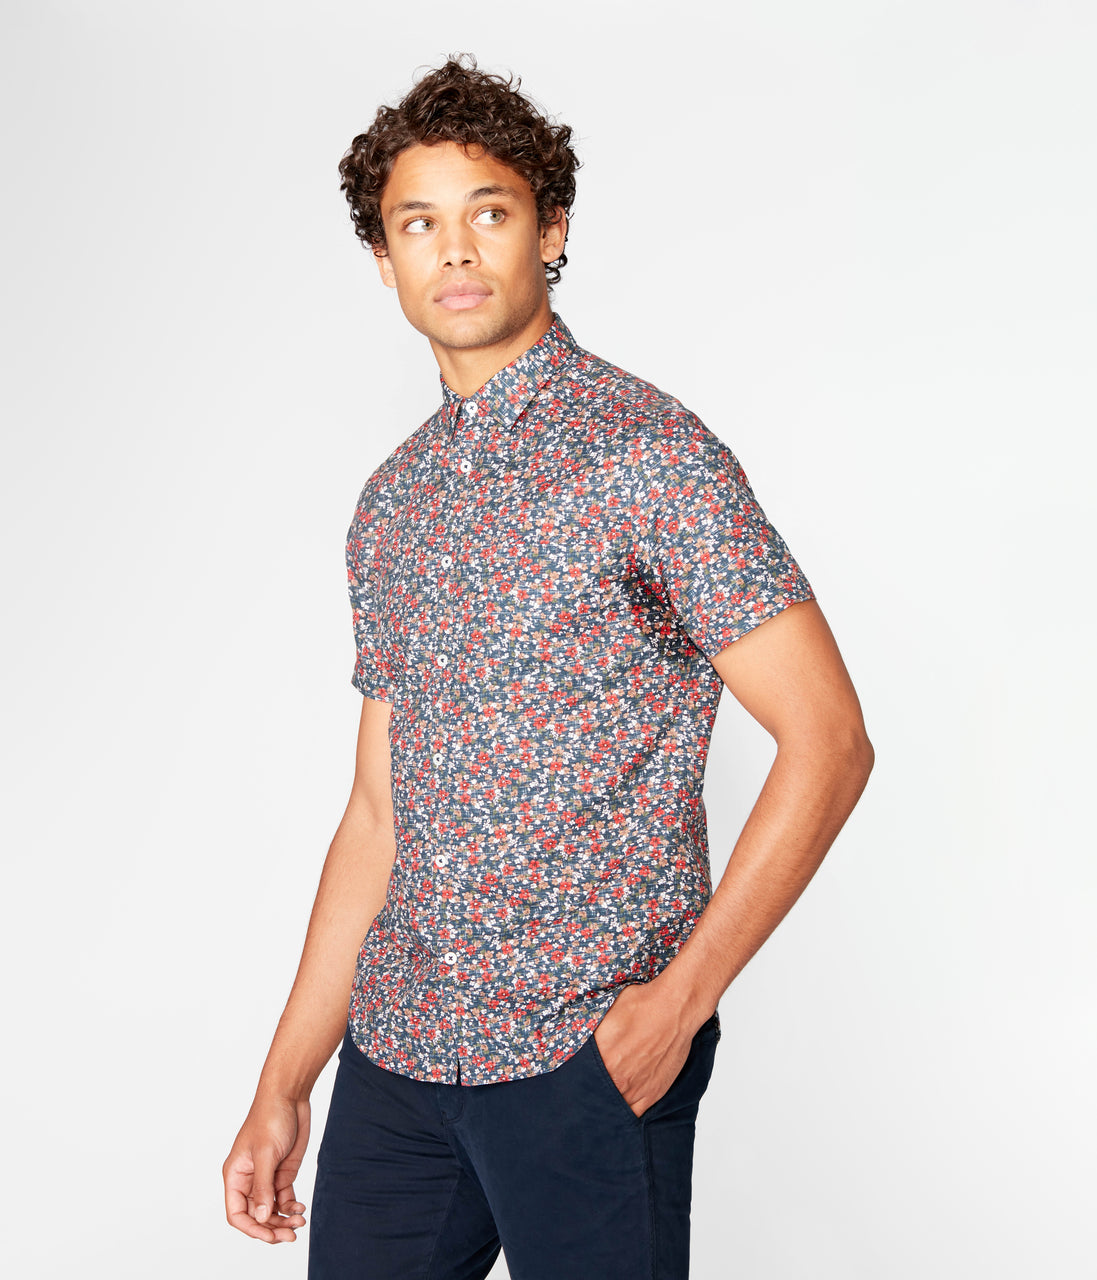 Woven On-Point Shirt - Navy Luxembourg Floral - Good Man Brand - Woven On-Point Shirt - Navy Luxembourg Floral